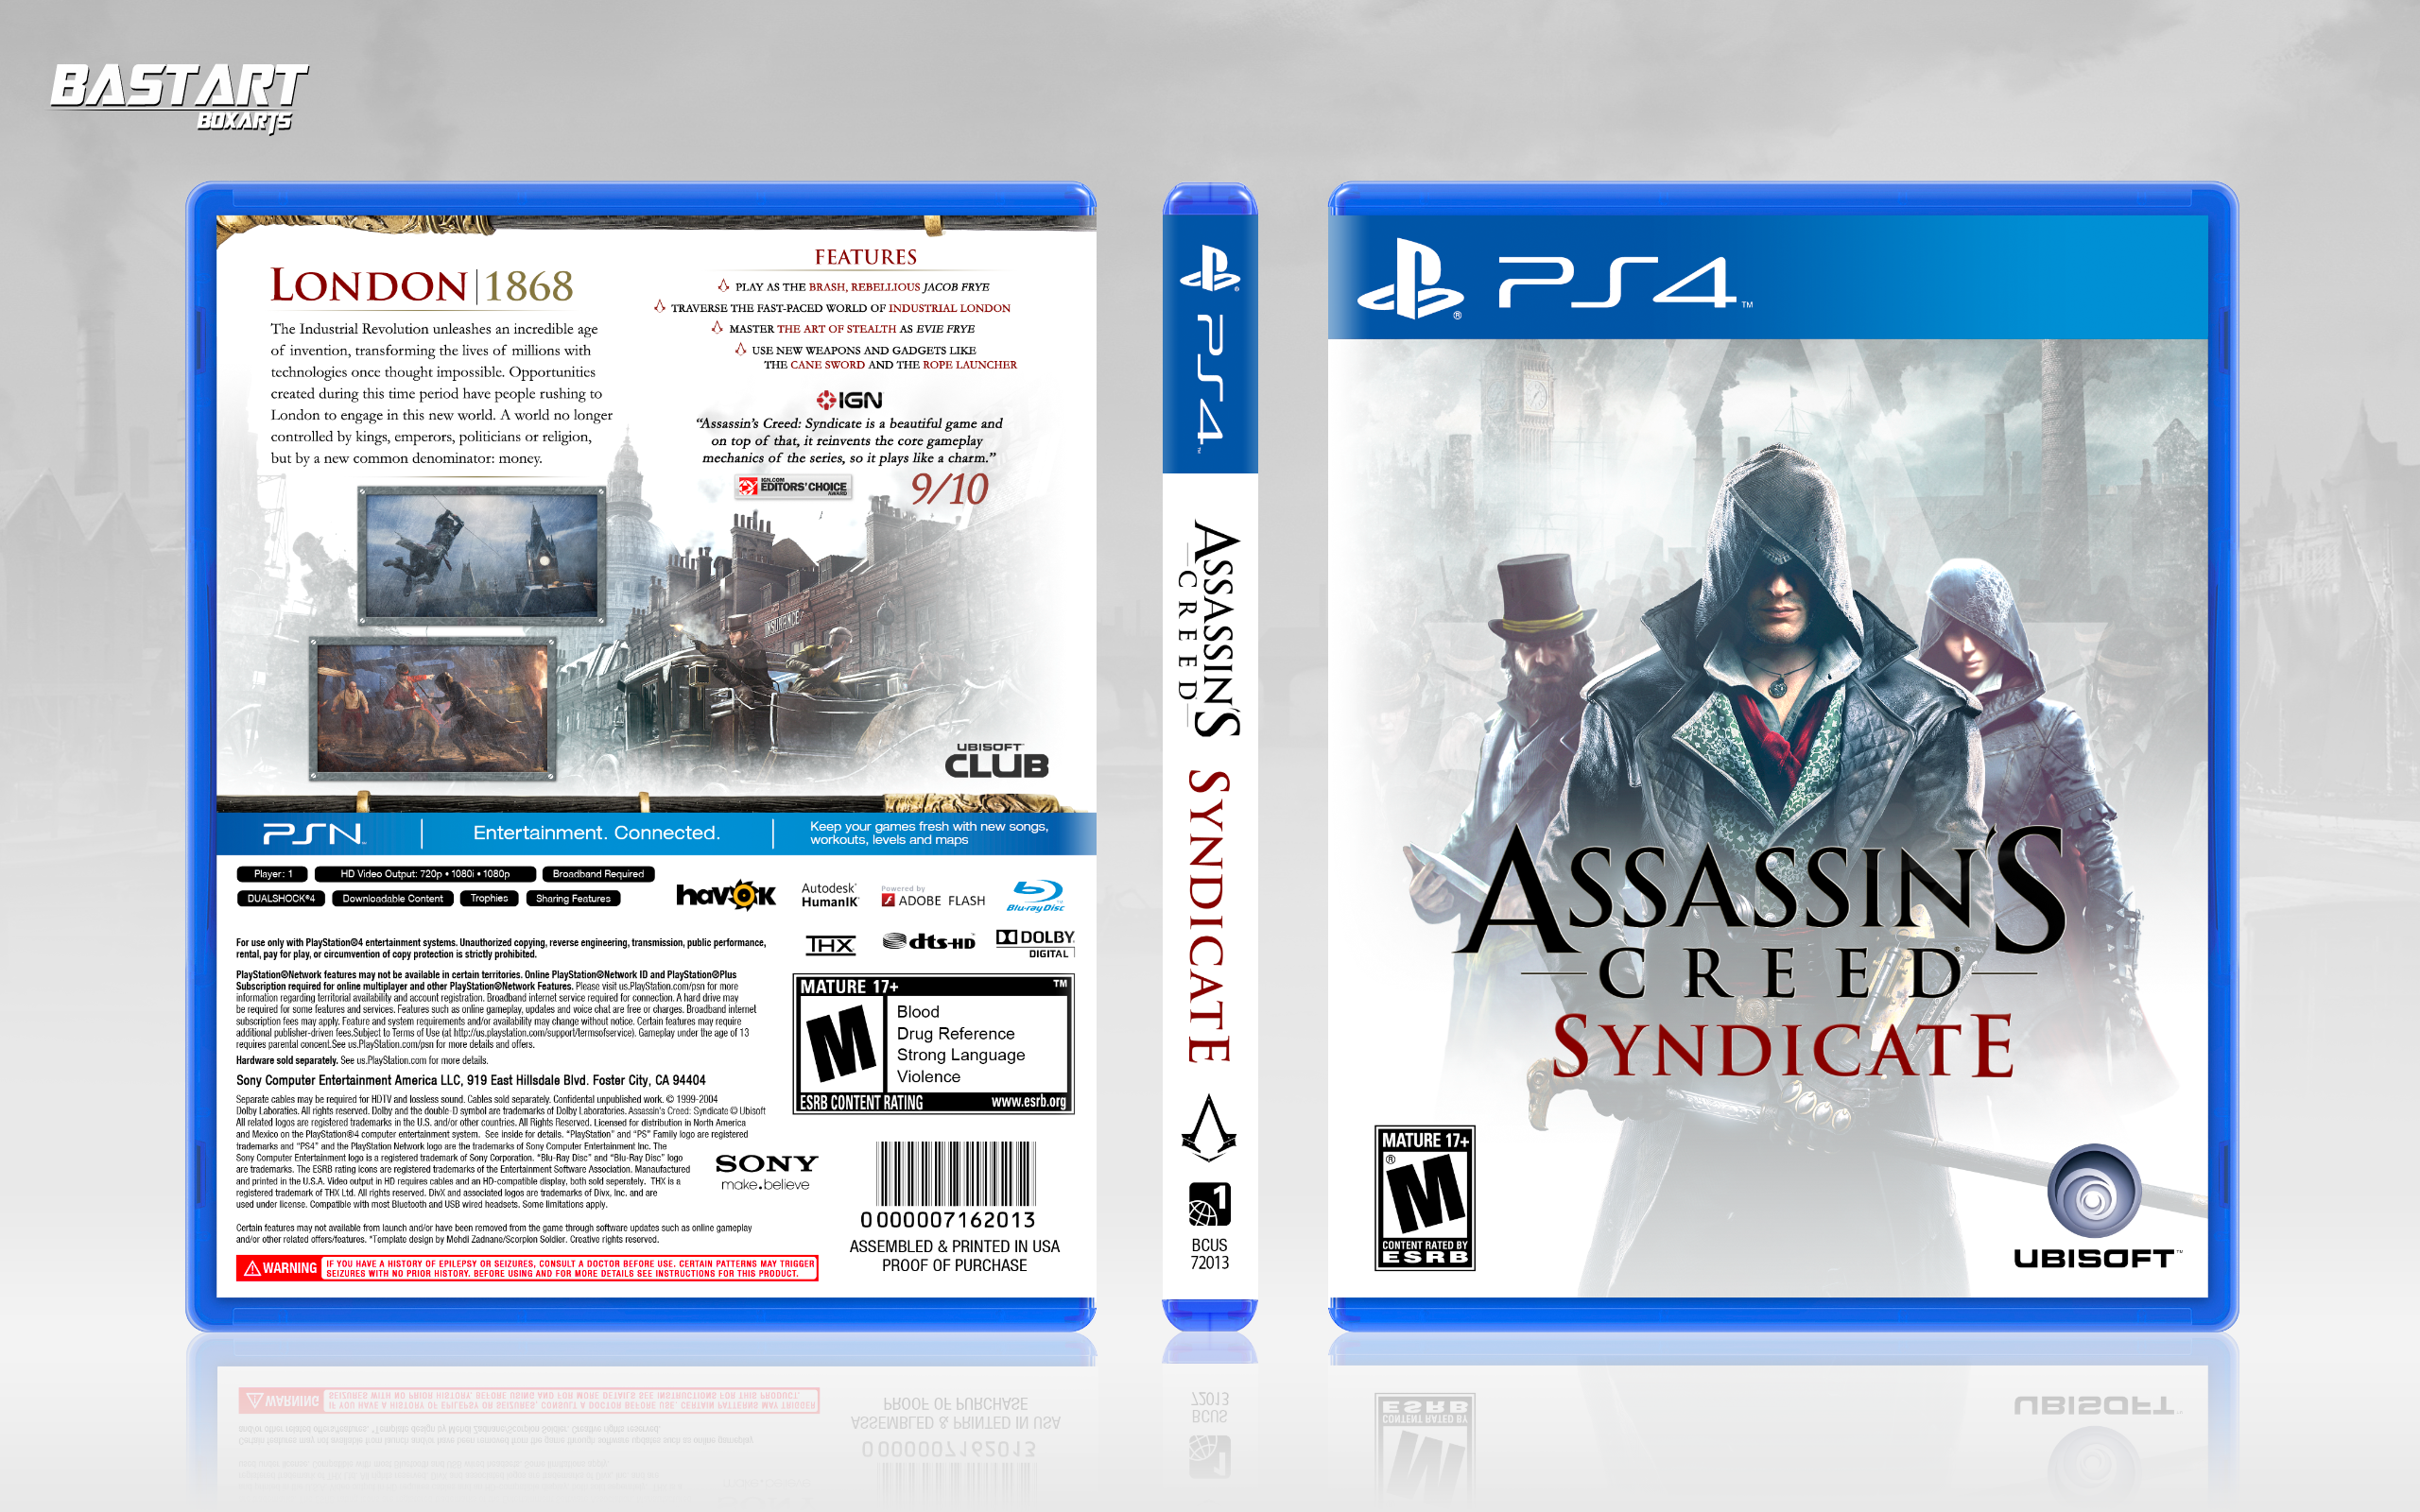 Assassin's Creed: Syndicate box cover